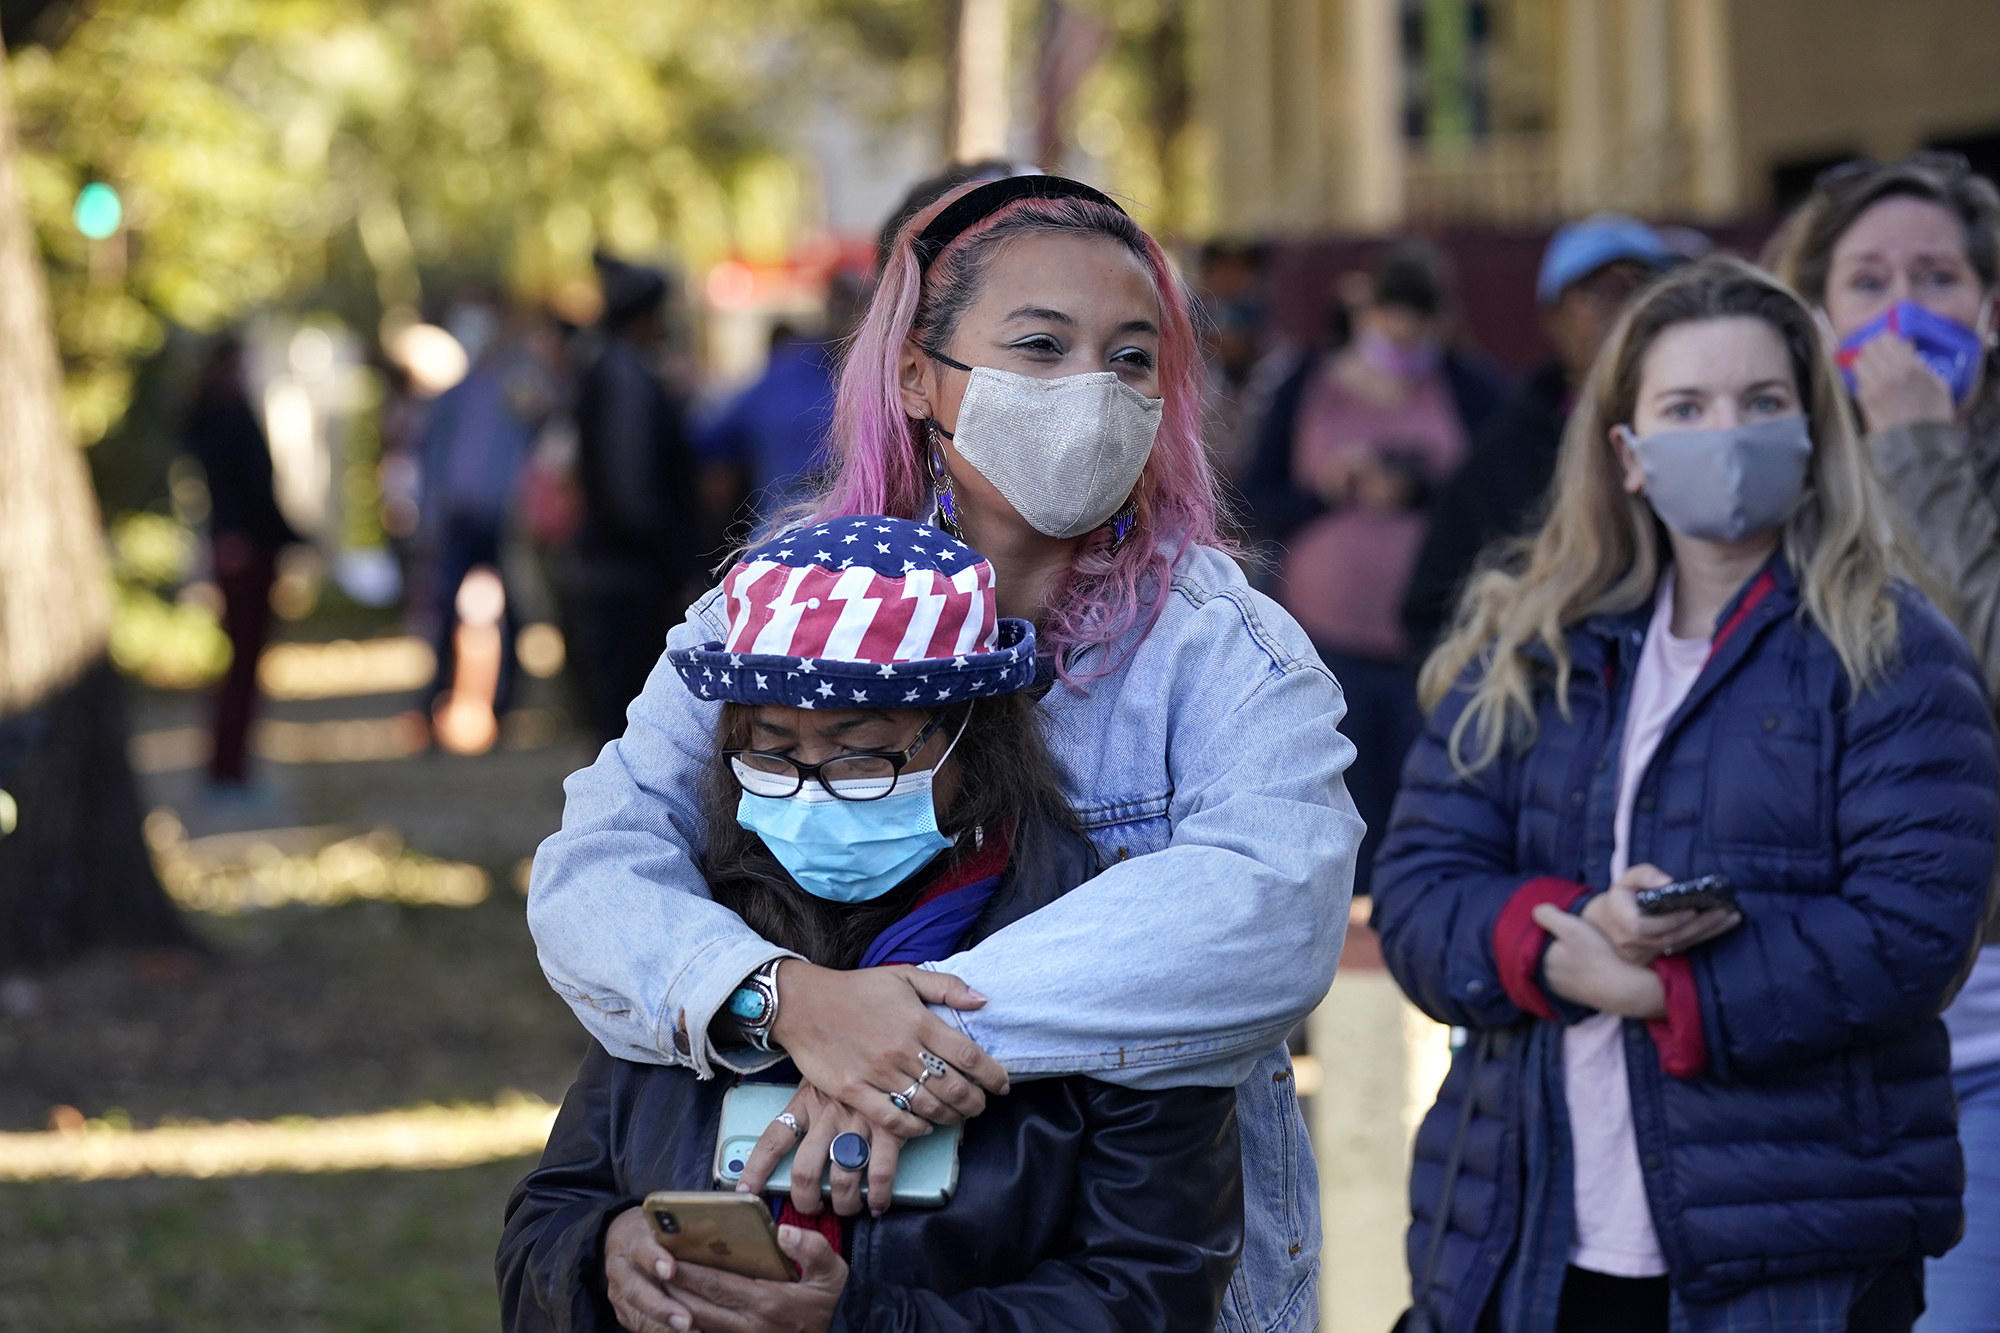 A young woman with pink hair hugs her mother who is wearing a mask and a flag hat